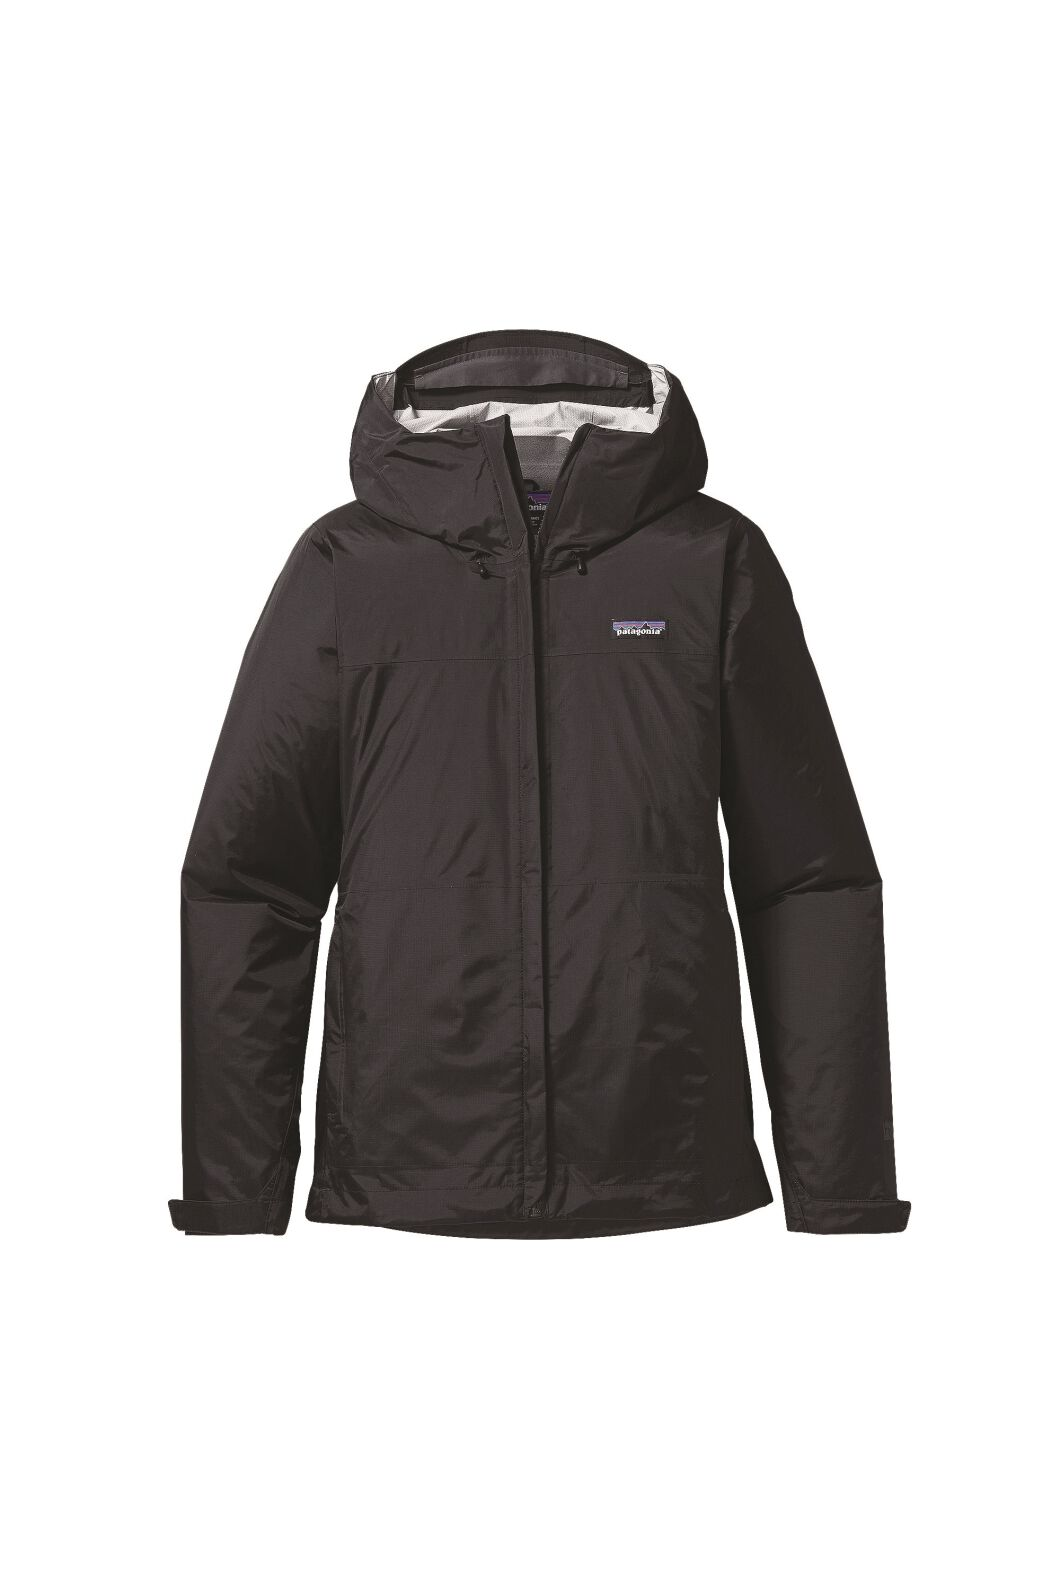 Patagonia Women's Torrentshell Jacket, Black, hi-res